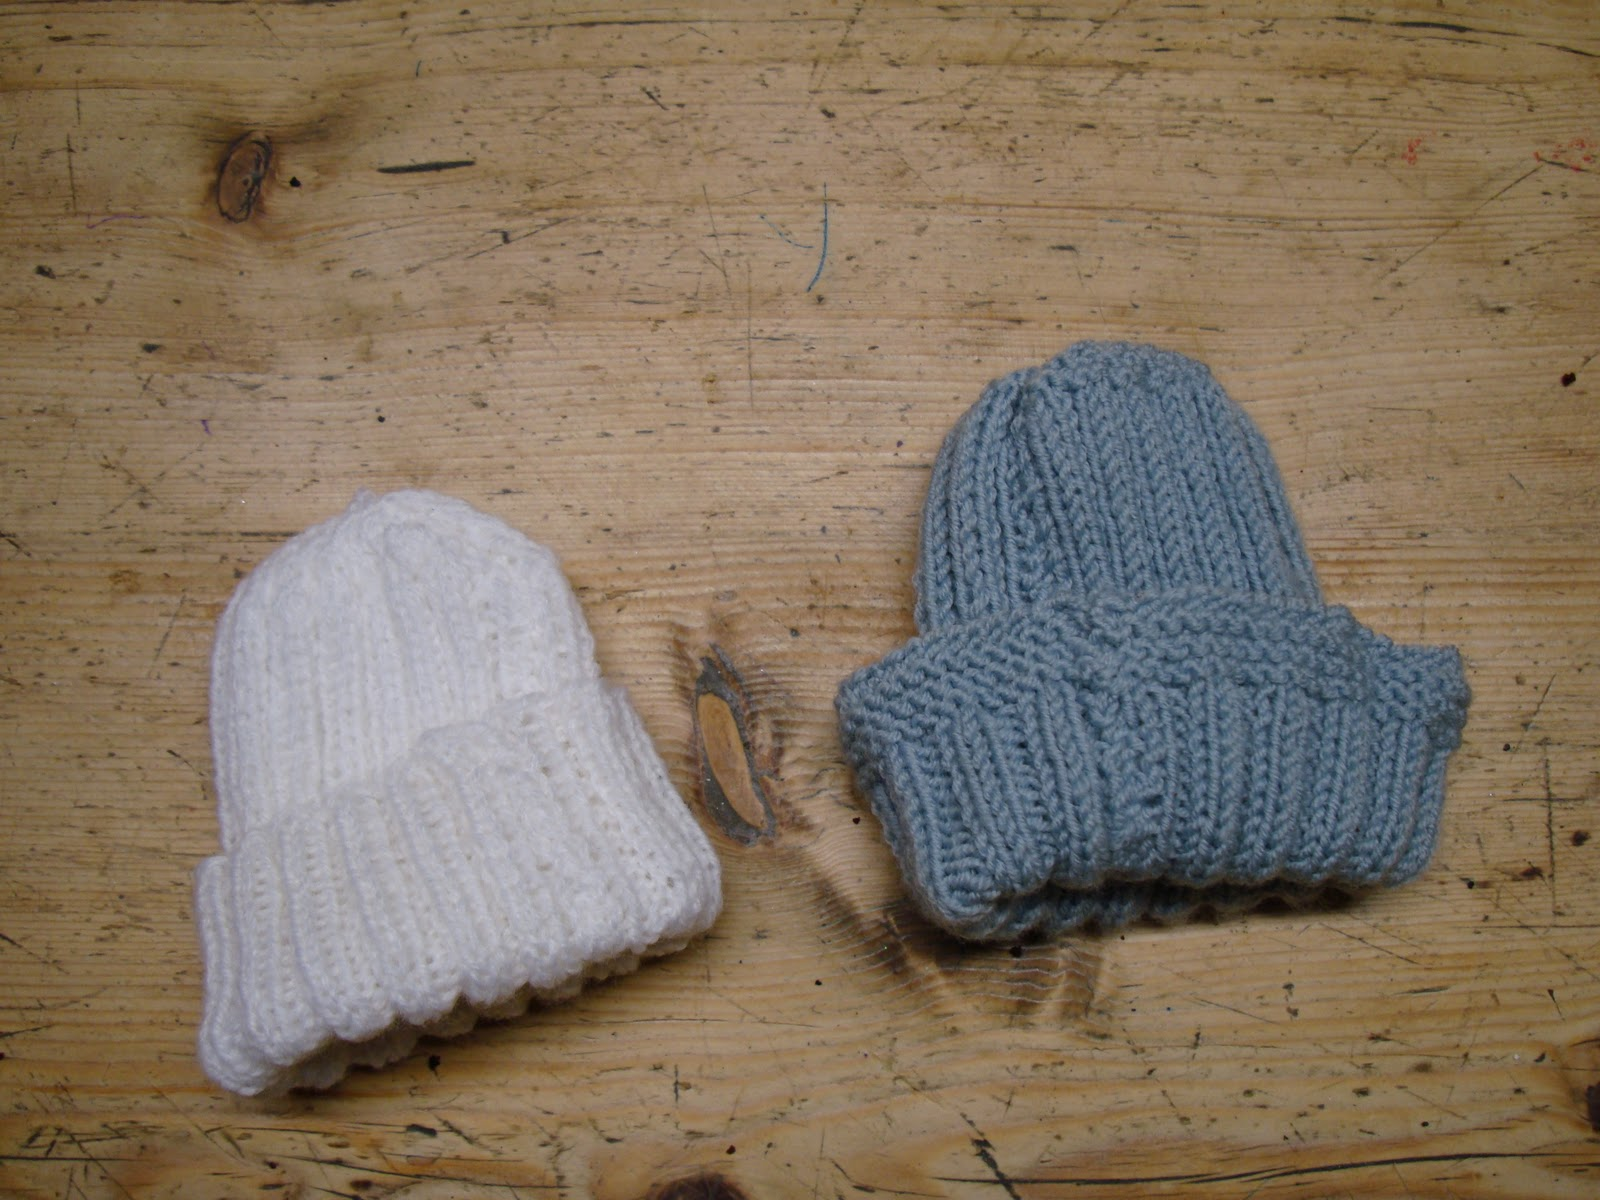 Knitting Patterns For Very Premature Babies : Knit a hat for a premature baby